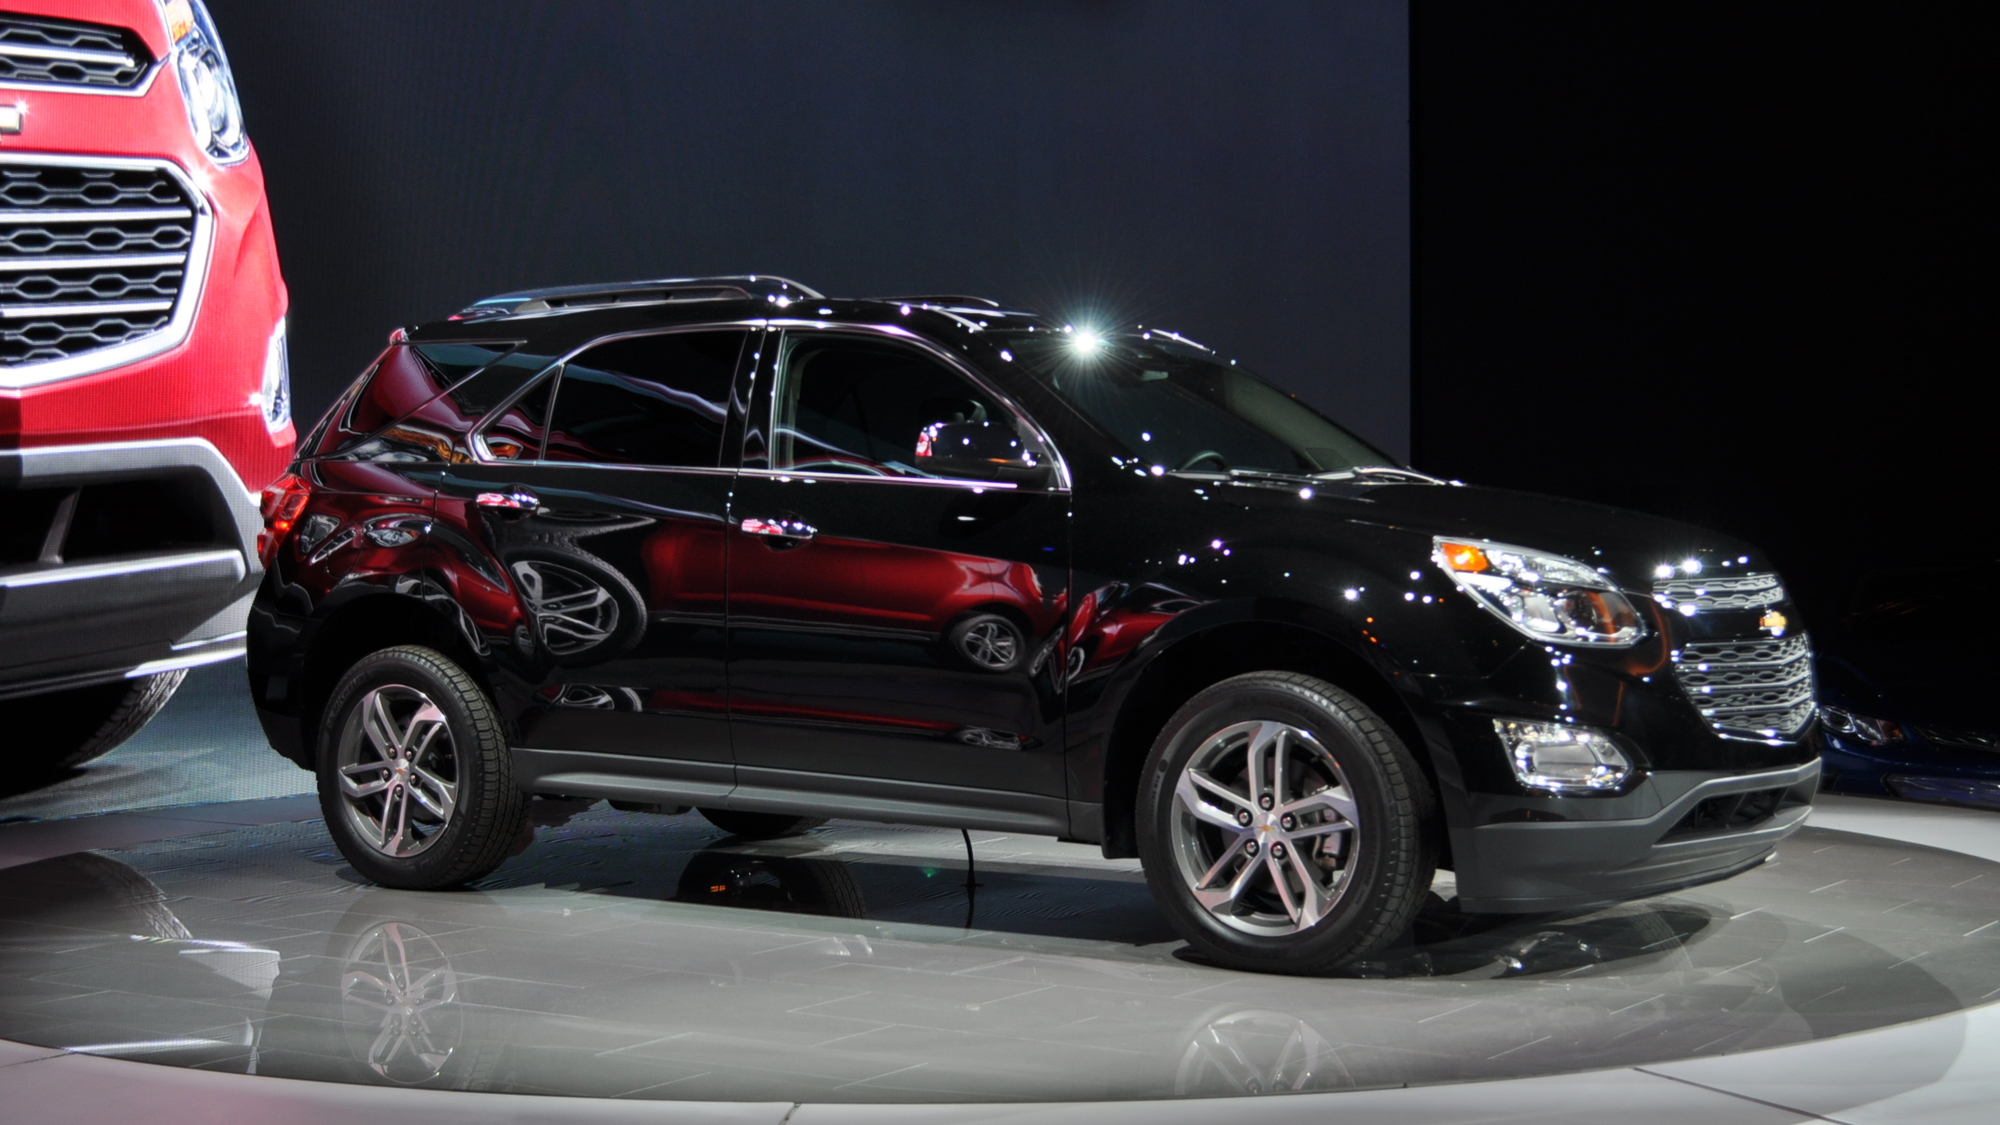 2016 Chevrolet Equinox, 2015 Chicago Auto Show